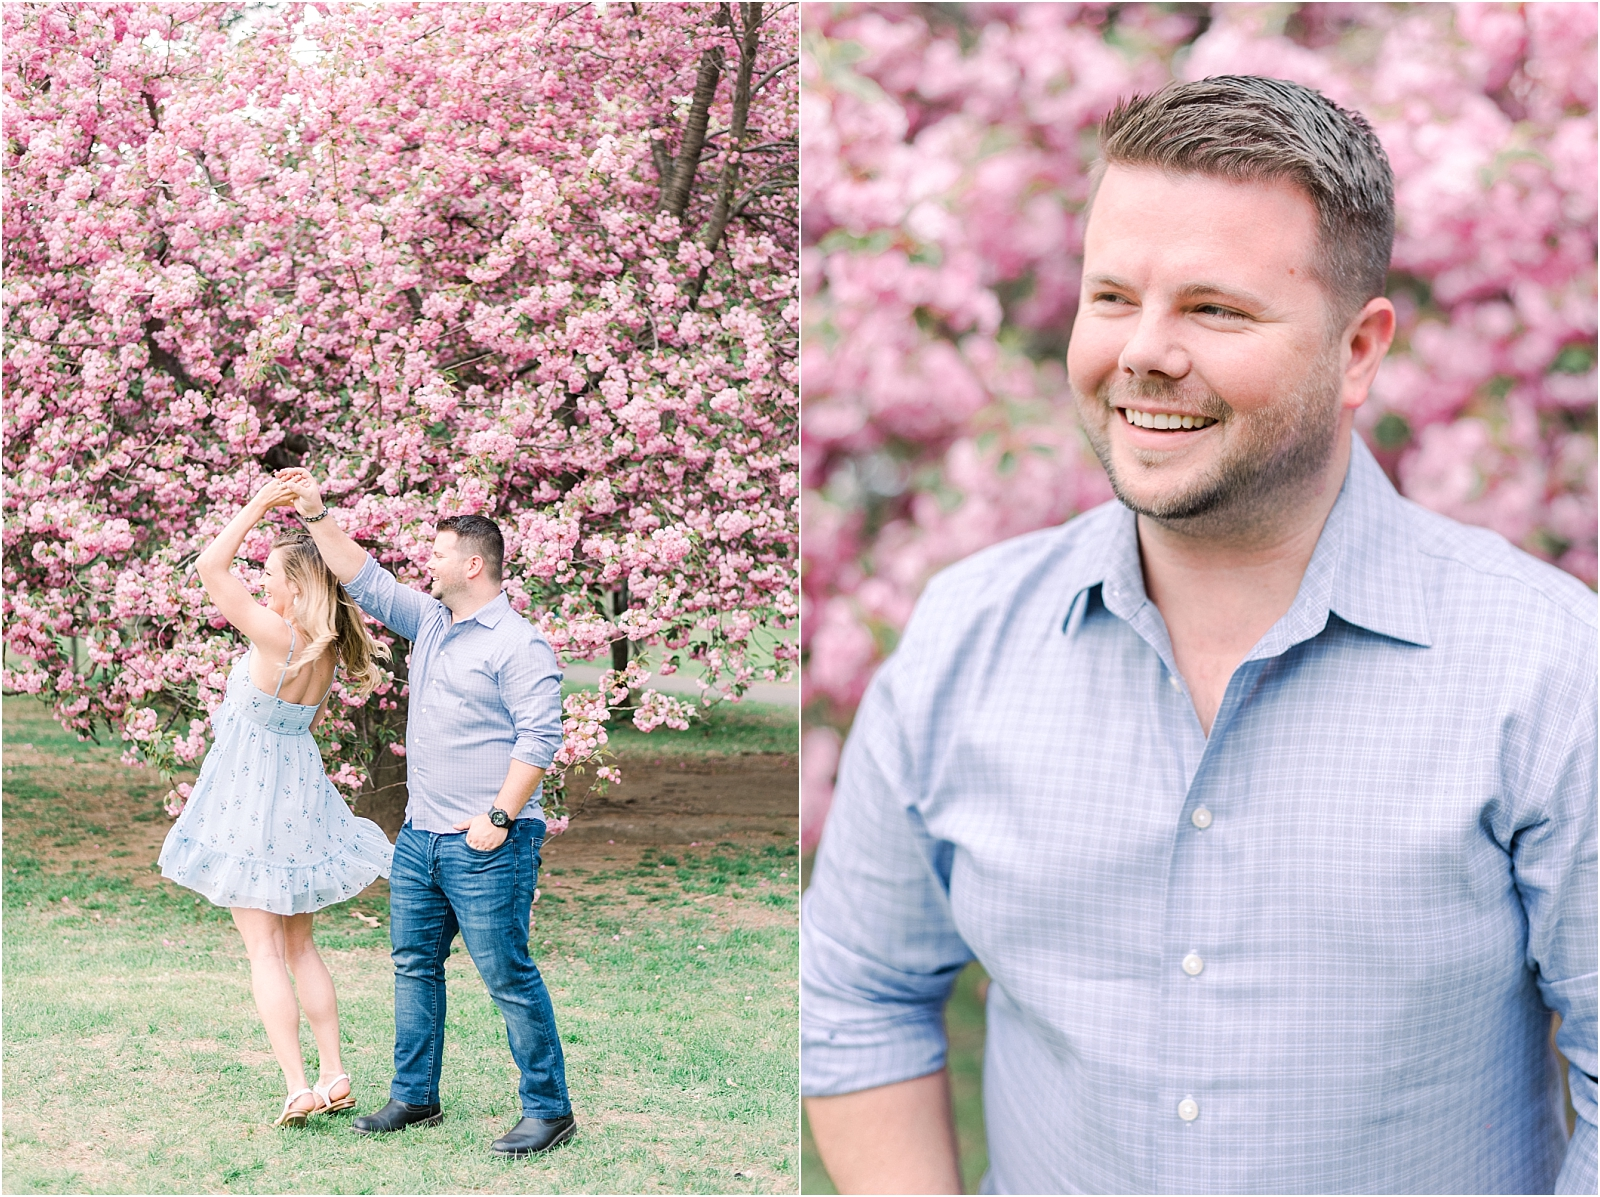 MT_branch_brook_park_engagement_session (9).jpg